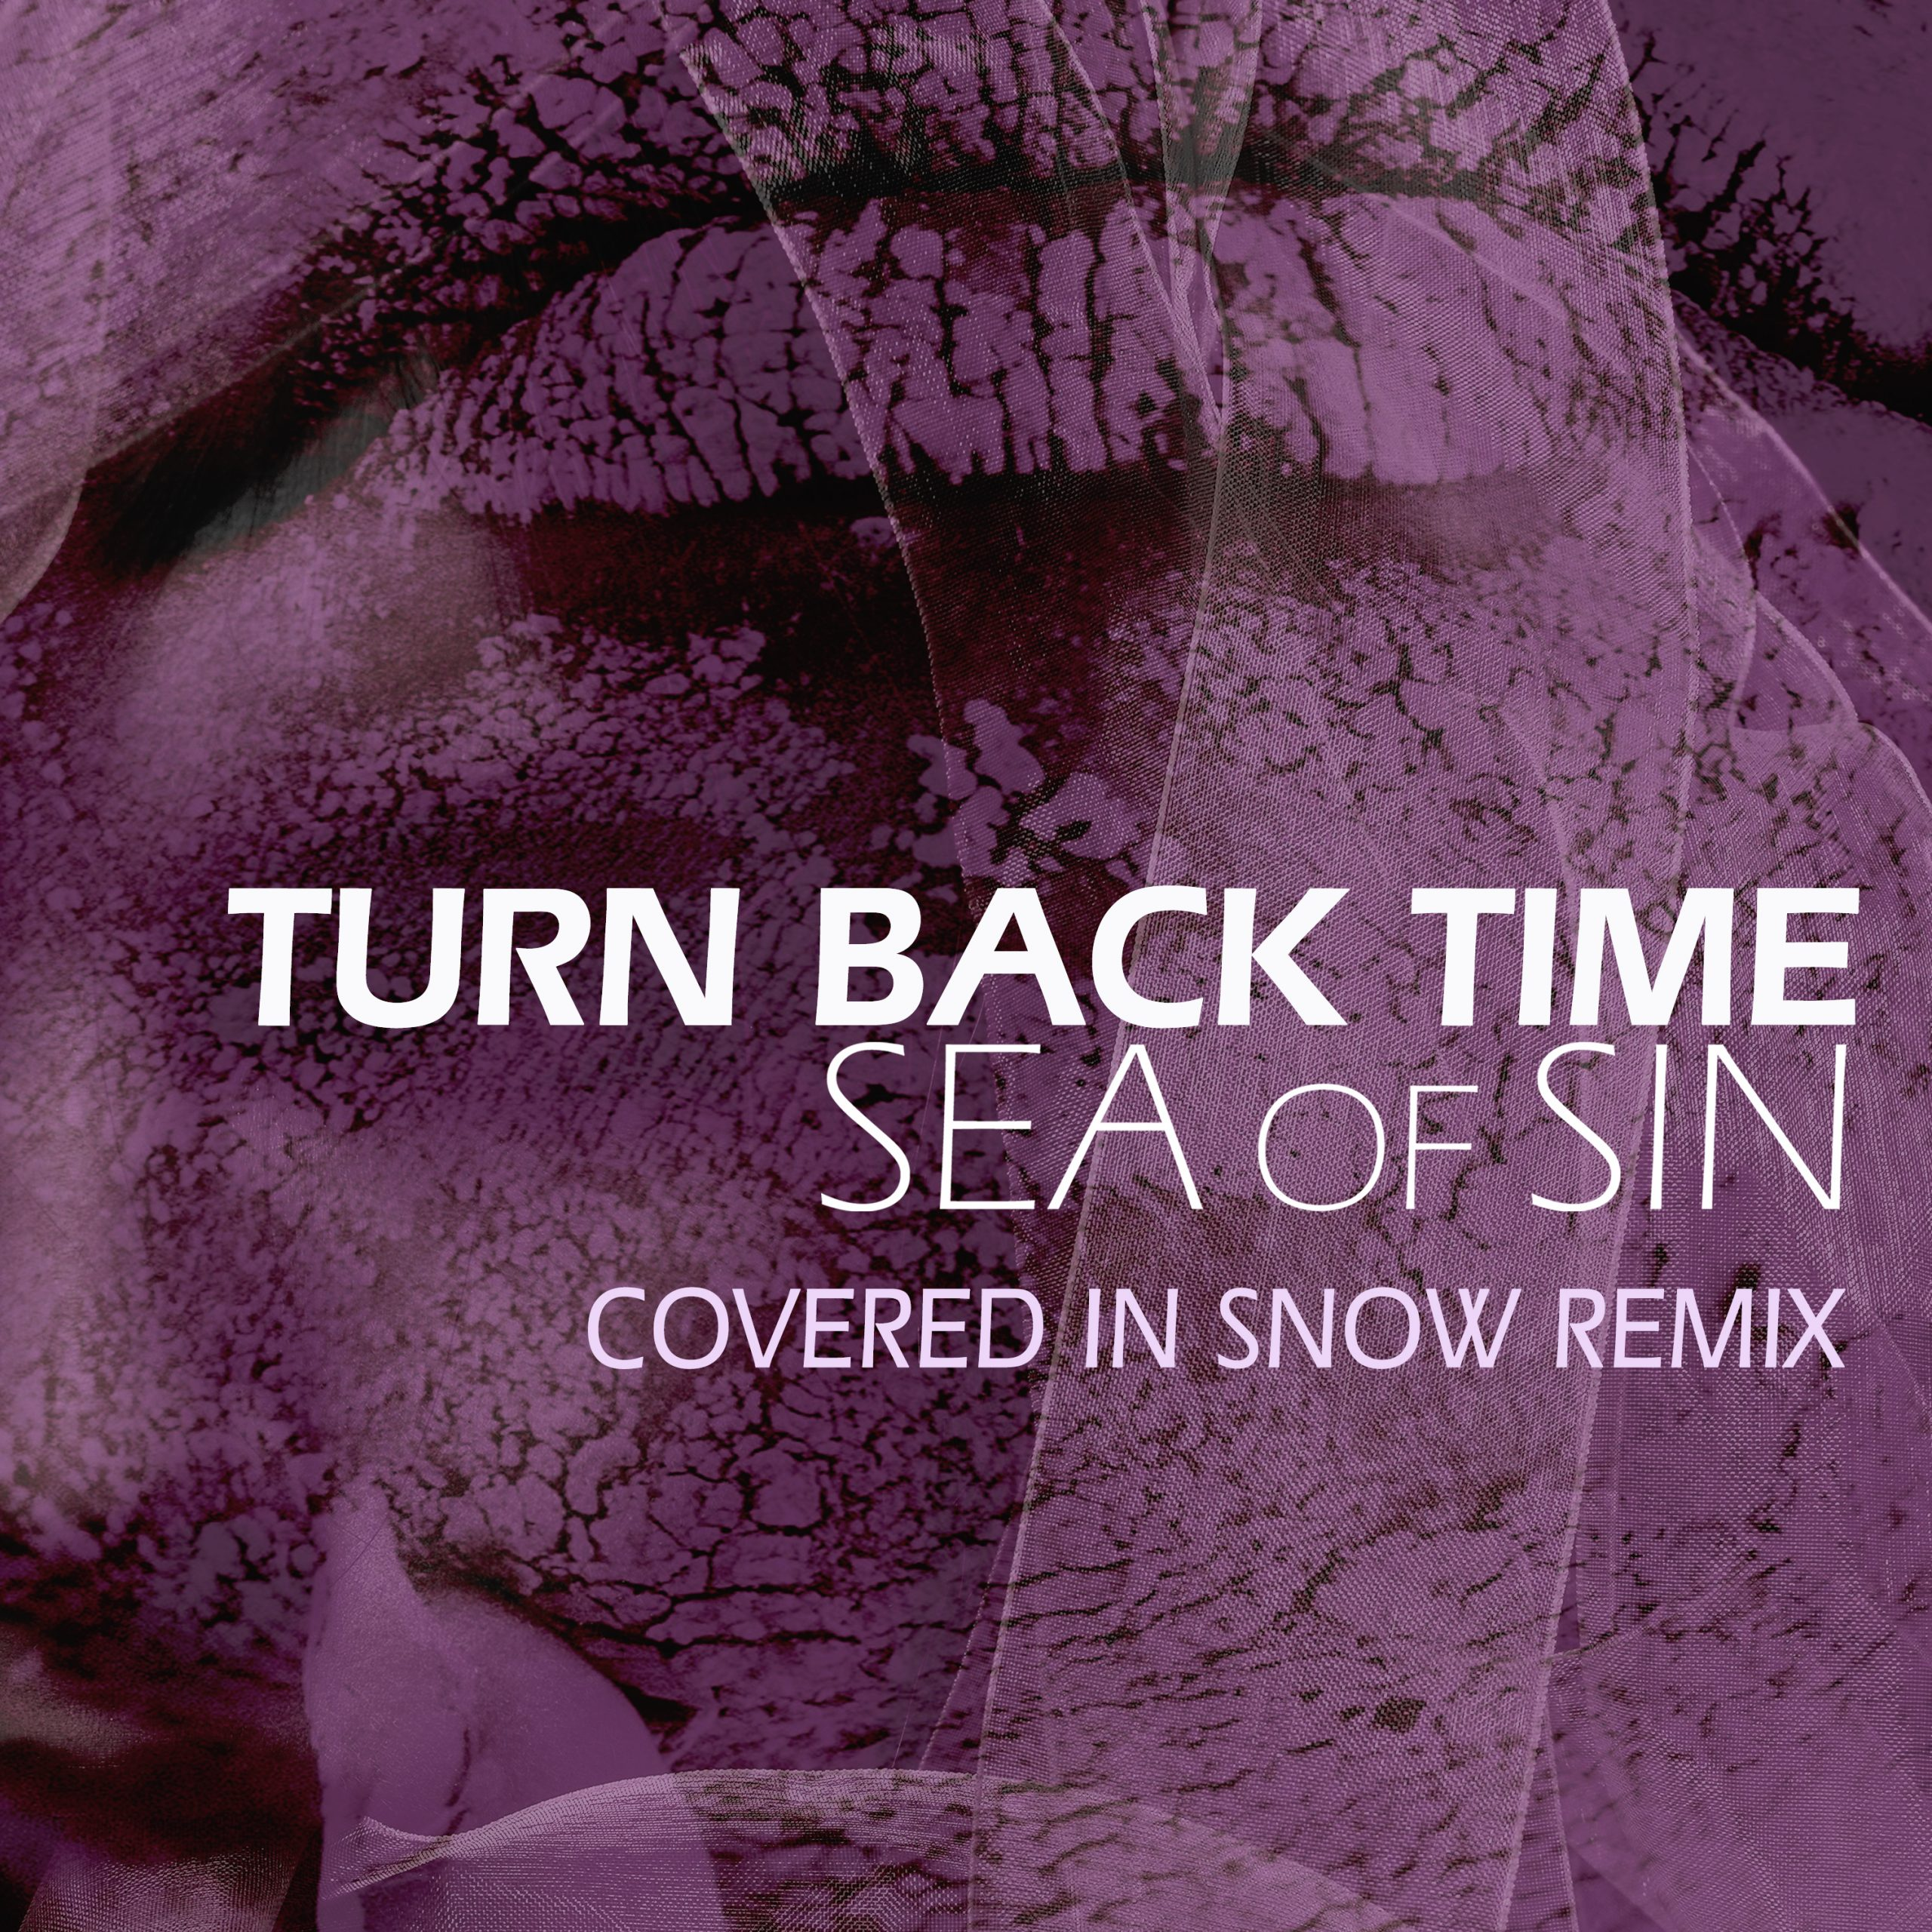 Another great Remix ahead – this time by Swedish Synthpop duo Covered in Snow